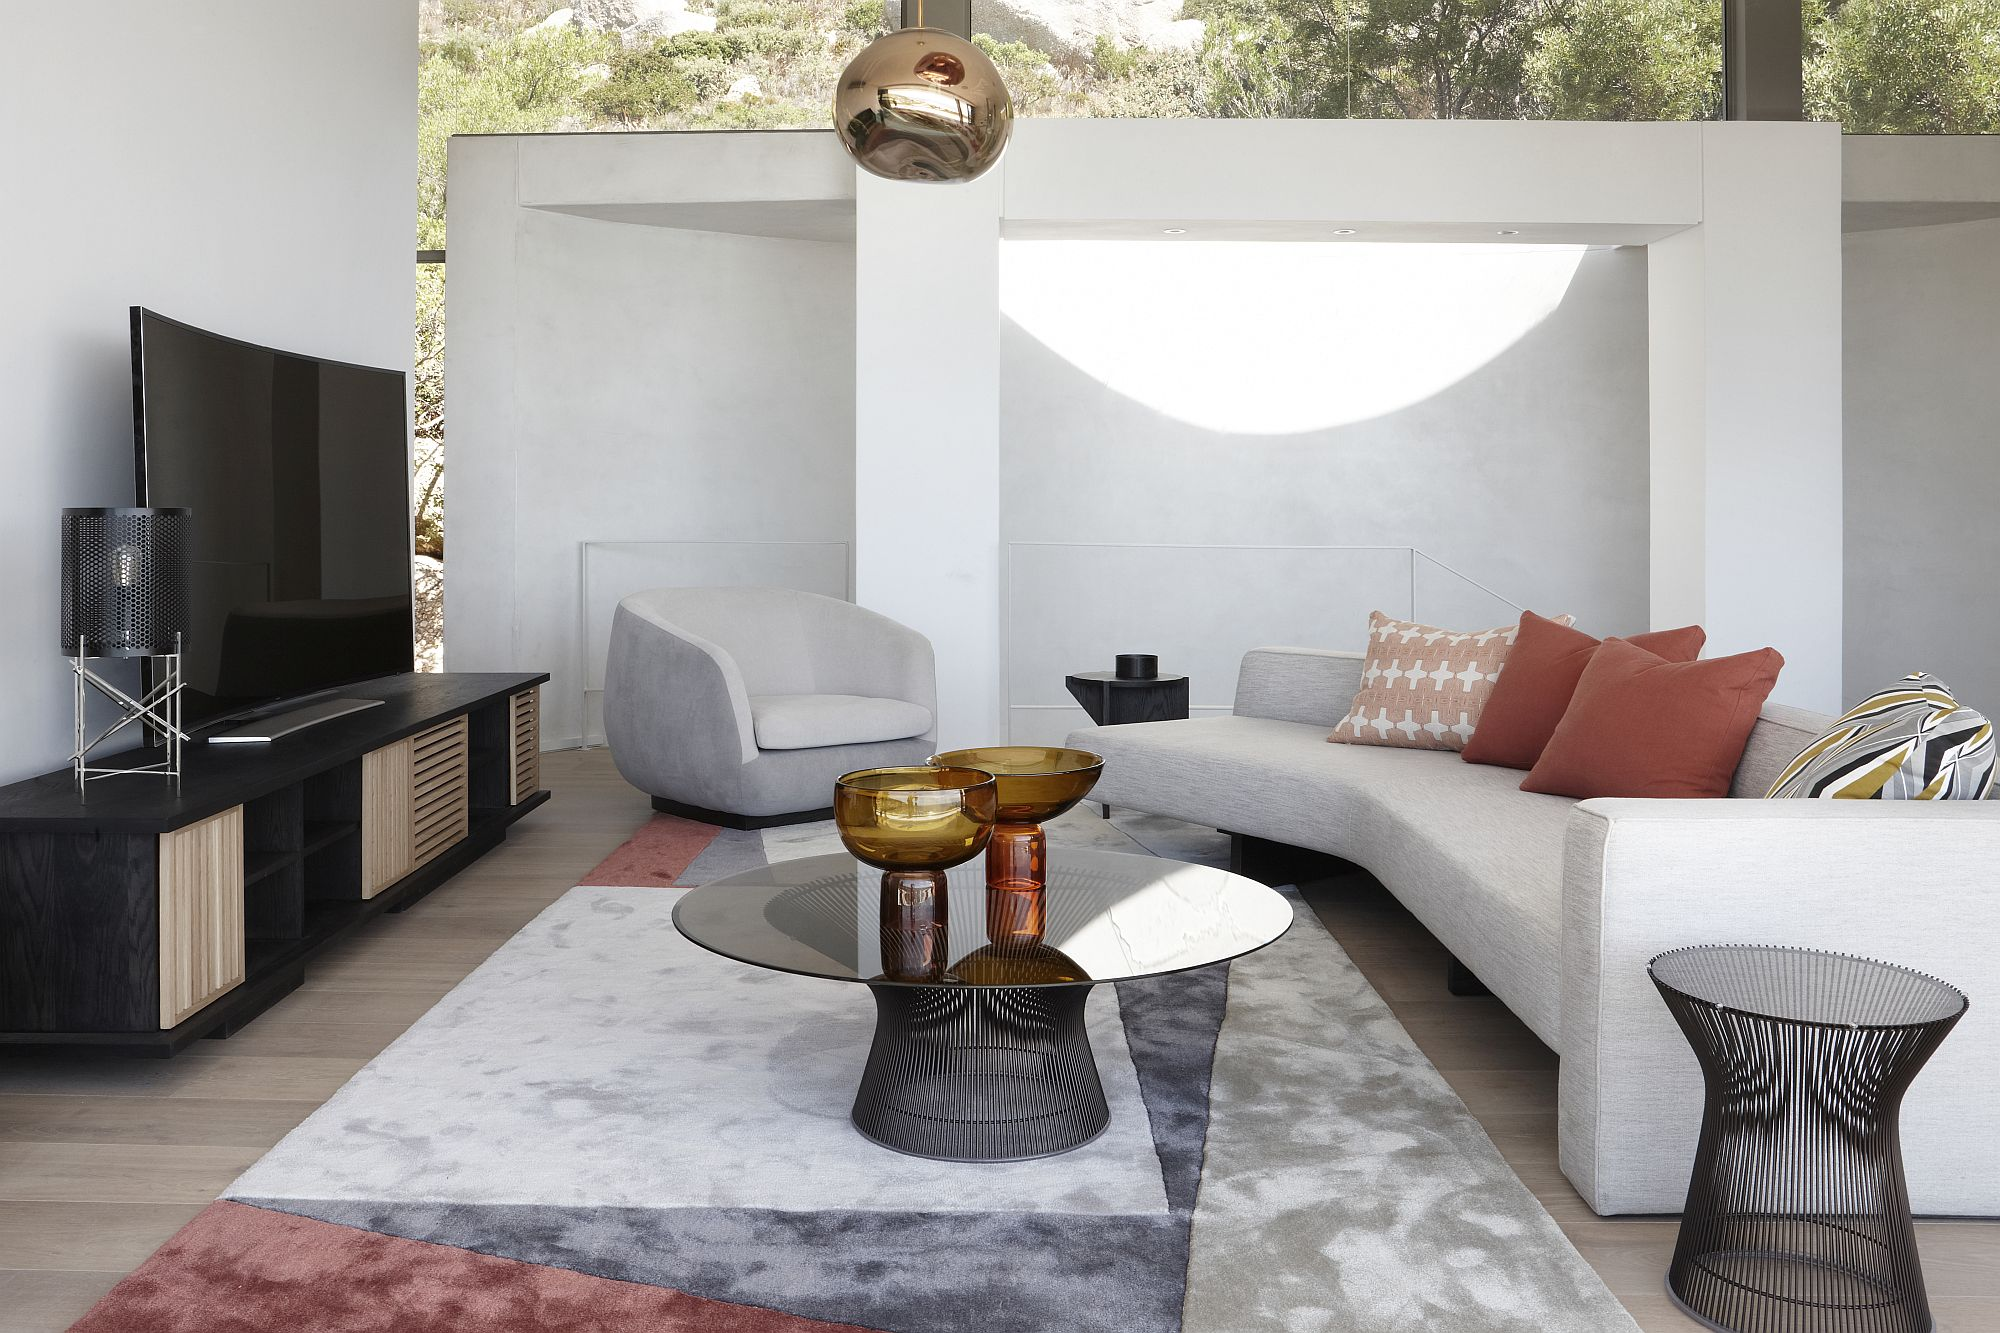 Social zone inside the house has an open, outdoorsy vibe